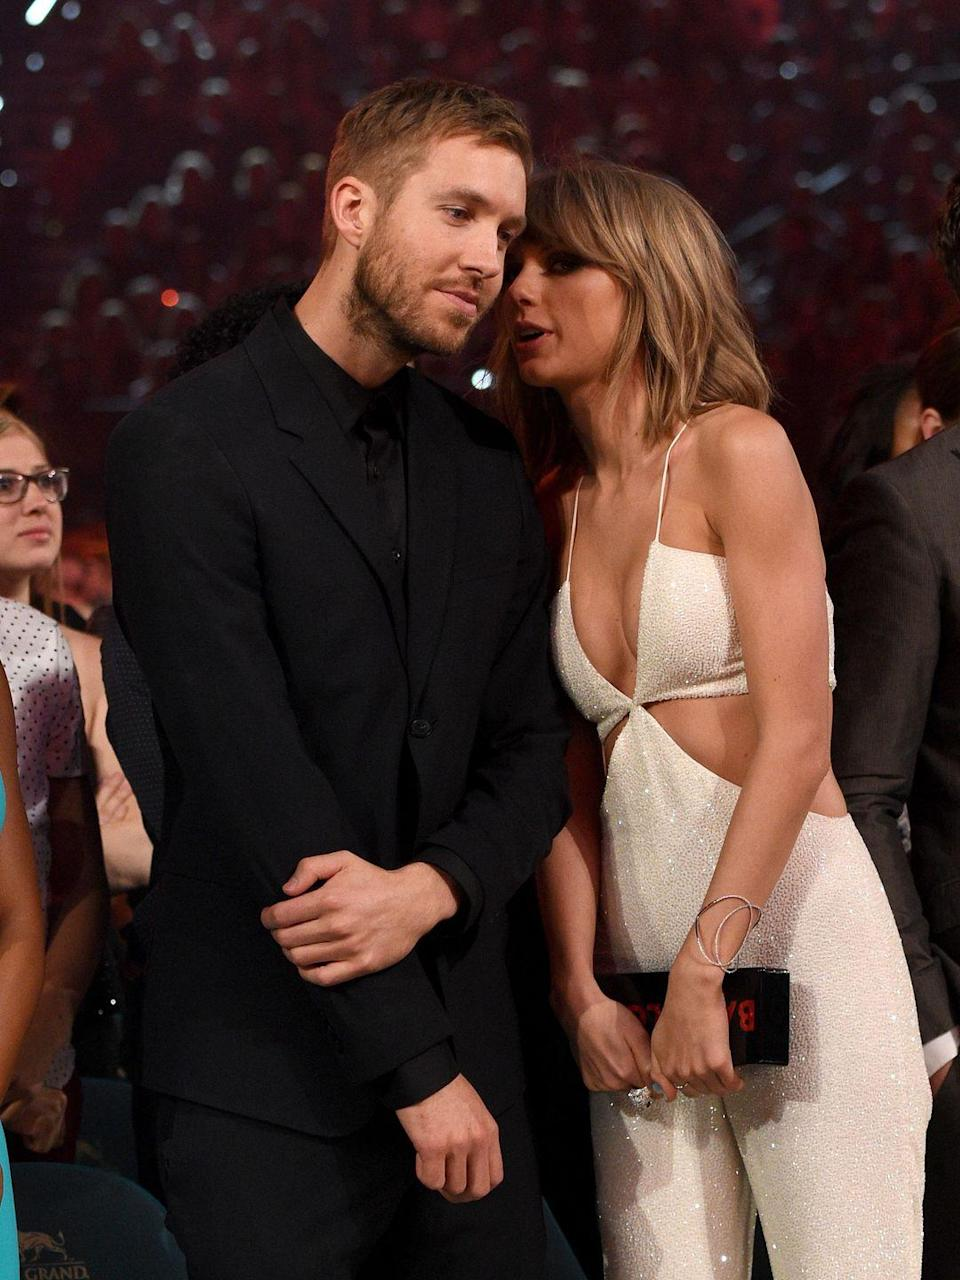 <p>After 15 months of dating, Tayvin called it quits and began a war over songwriting credits on 'This Is What You Came For.' In response to Taylor's camp publicly confirming that she used the pseudonym Nils Sjoberg to write the song, Calvin wrote (via a series of tweets that have since been deleted), 'Please focus on the positive aspects of YOUR life because you've earned a great one… I know you're off on tour and you need someone new to try and bury like Katy ETC but I'm not that guy, sorry. I won't allow it.'</p><p> He also referenced Taylor's new relationship at the time with Tom Hiddleston: 'I figure if you're happy in your new relationship you should focus on that instead of trying to tear your ex bf down for something to do.'</p>